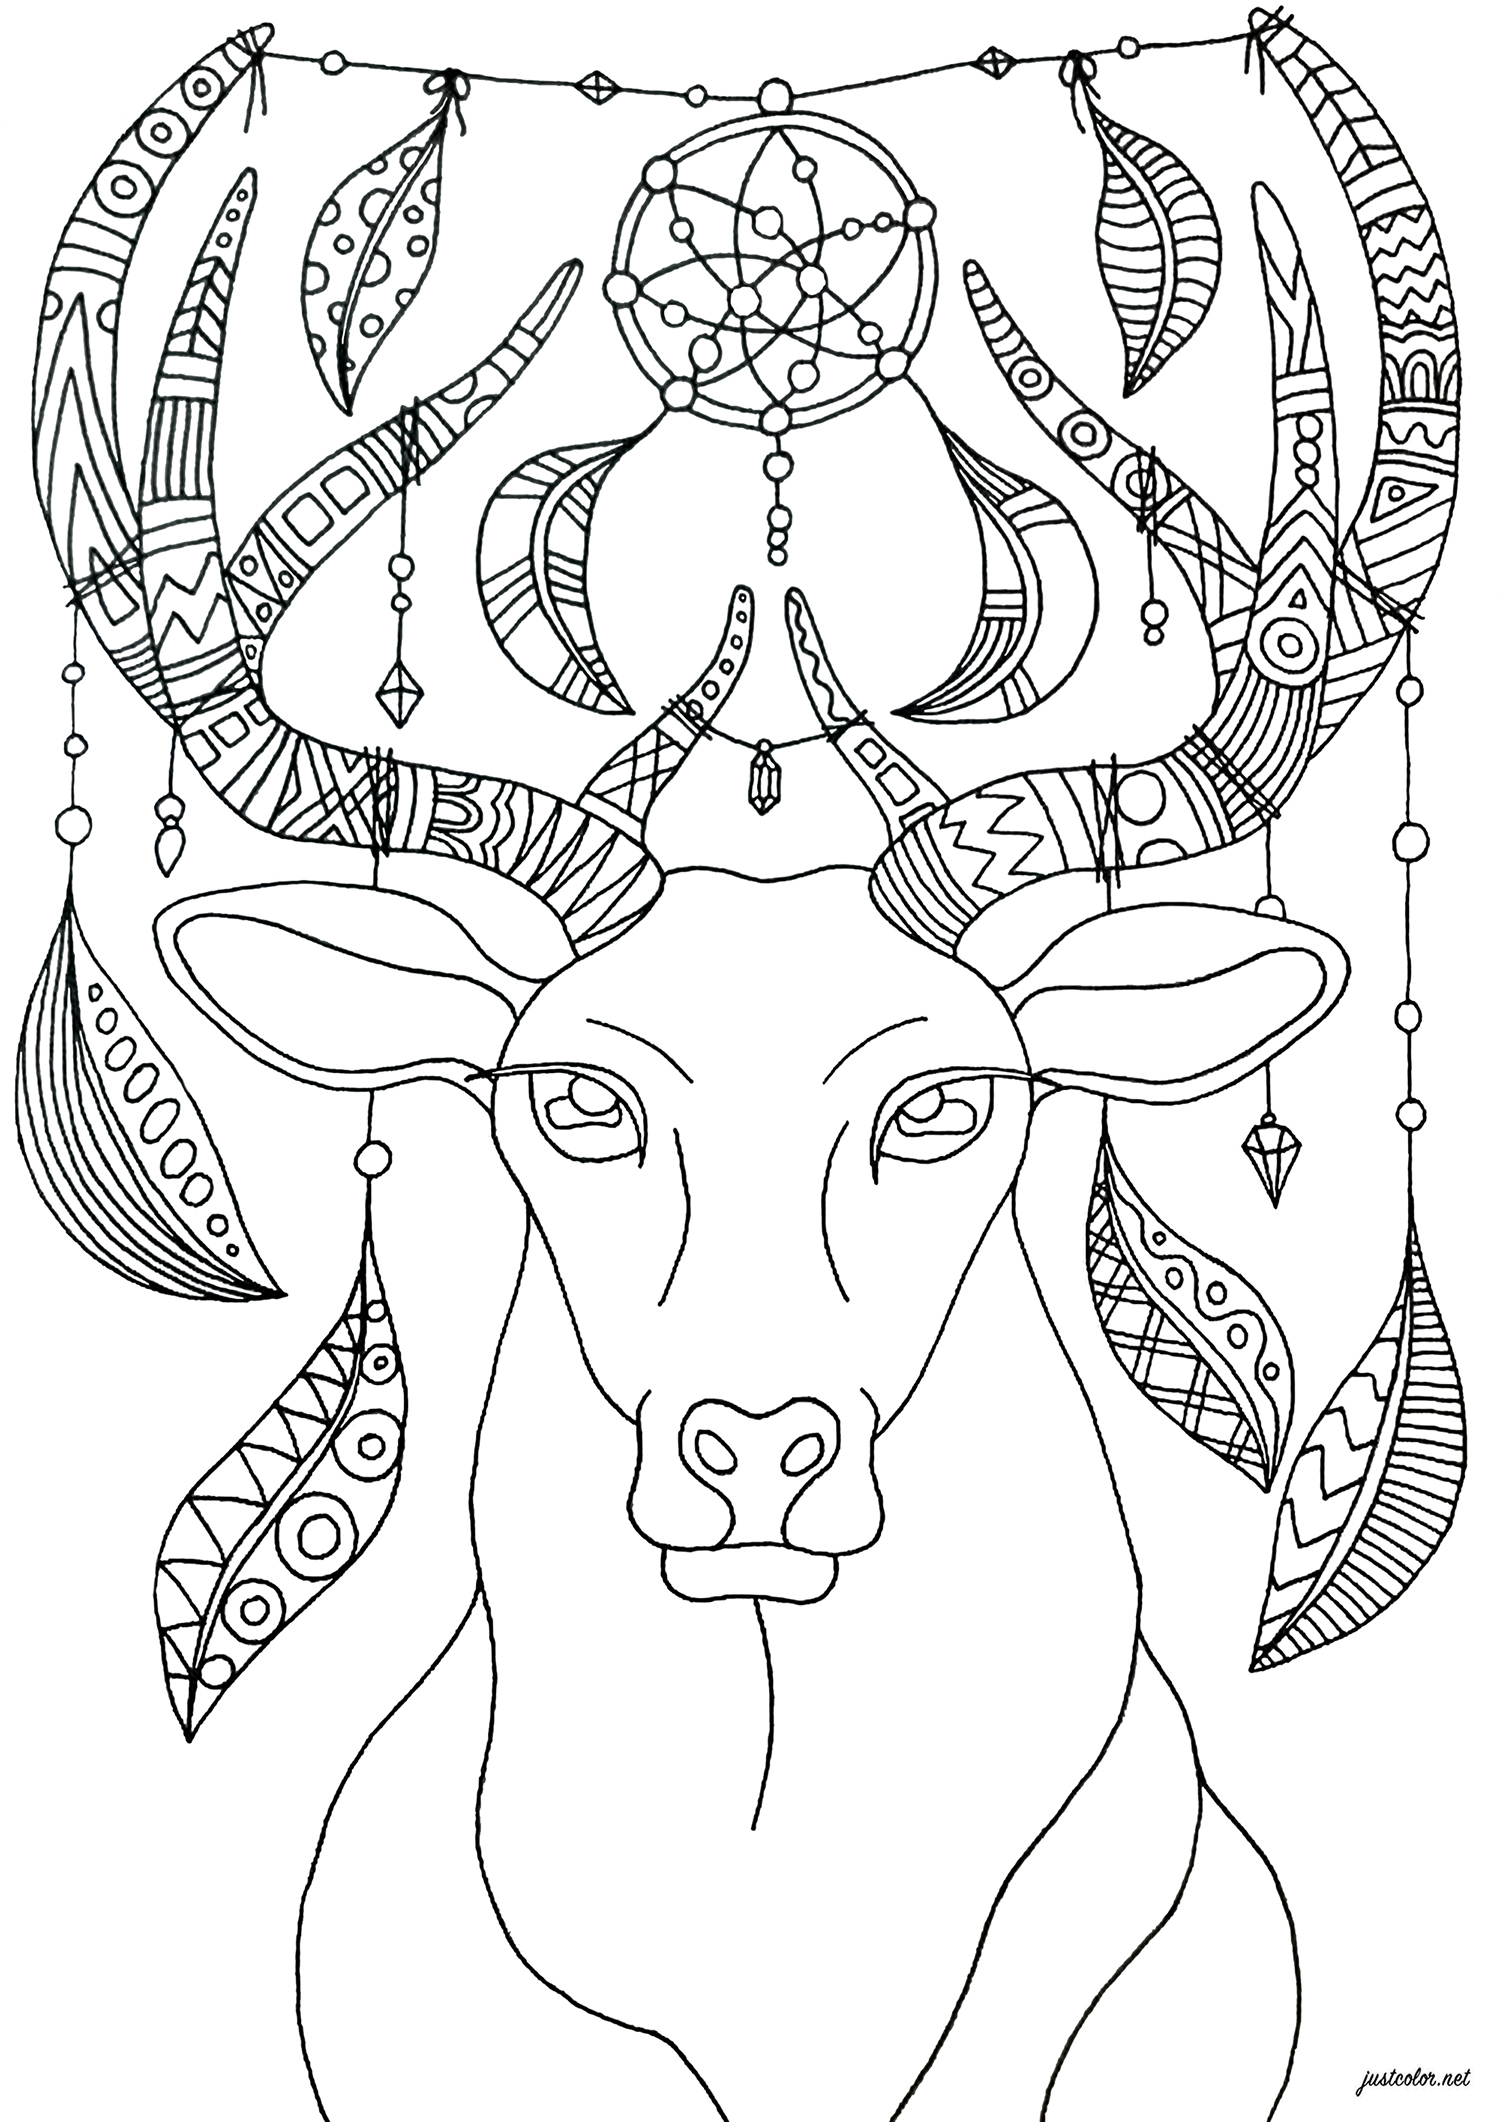 Color this deer with bohemian and relaxing ornaments - simple version